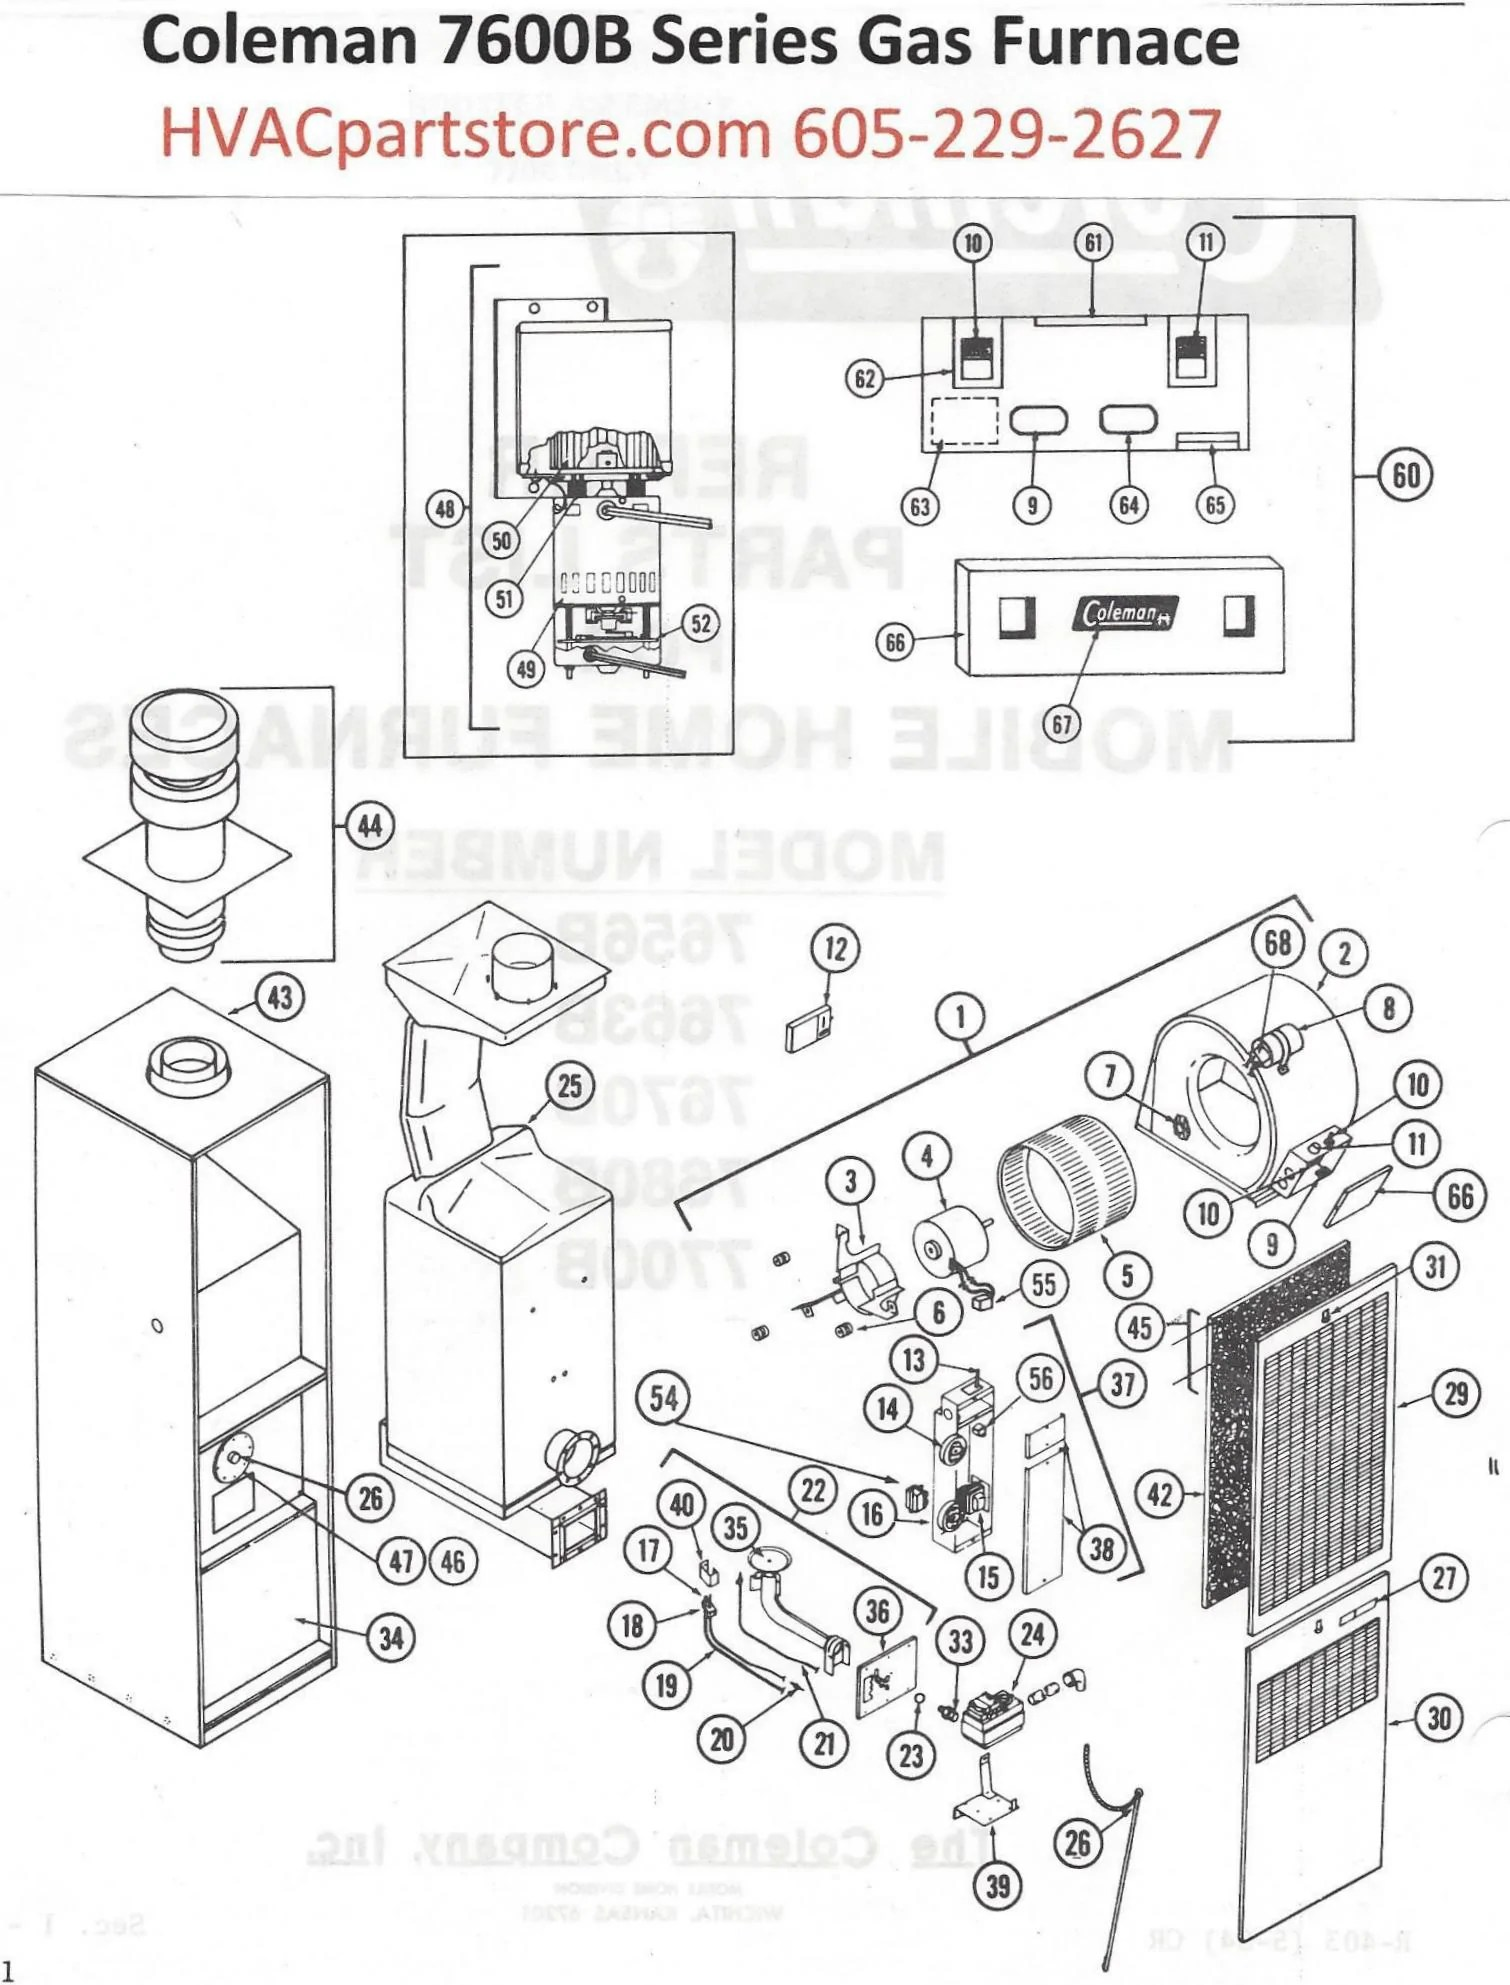 medium resolution of 7680b856 coleman gas furnace parts u2013 hvacpartstore trailer wiring diagram coleman gas furnace 7680b856 coleman